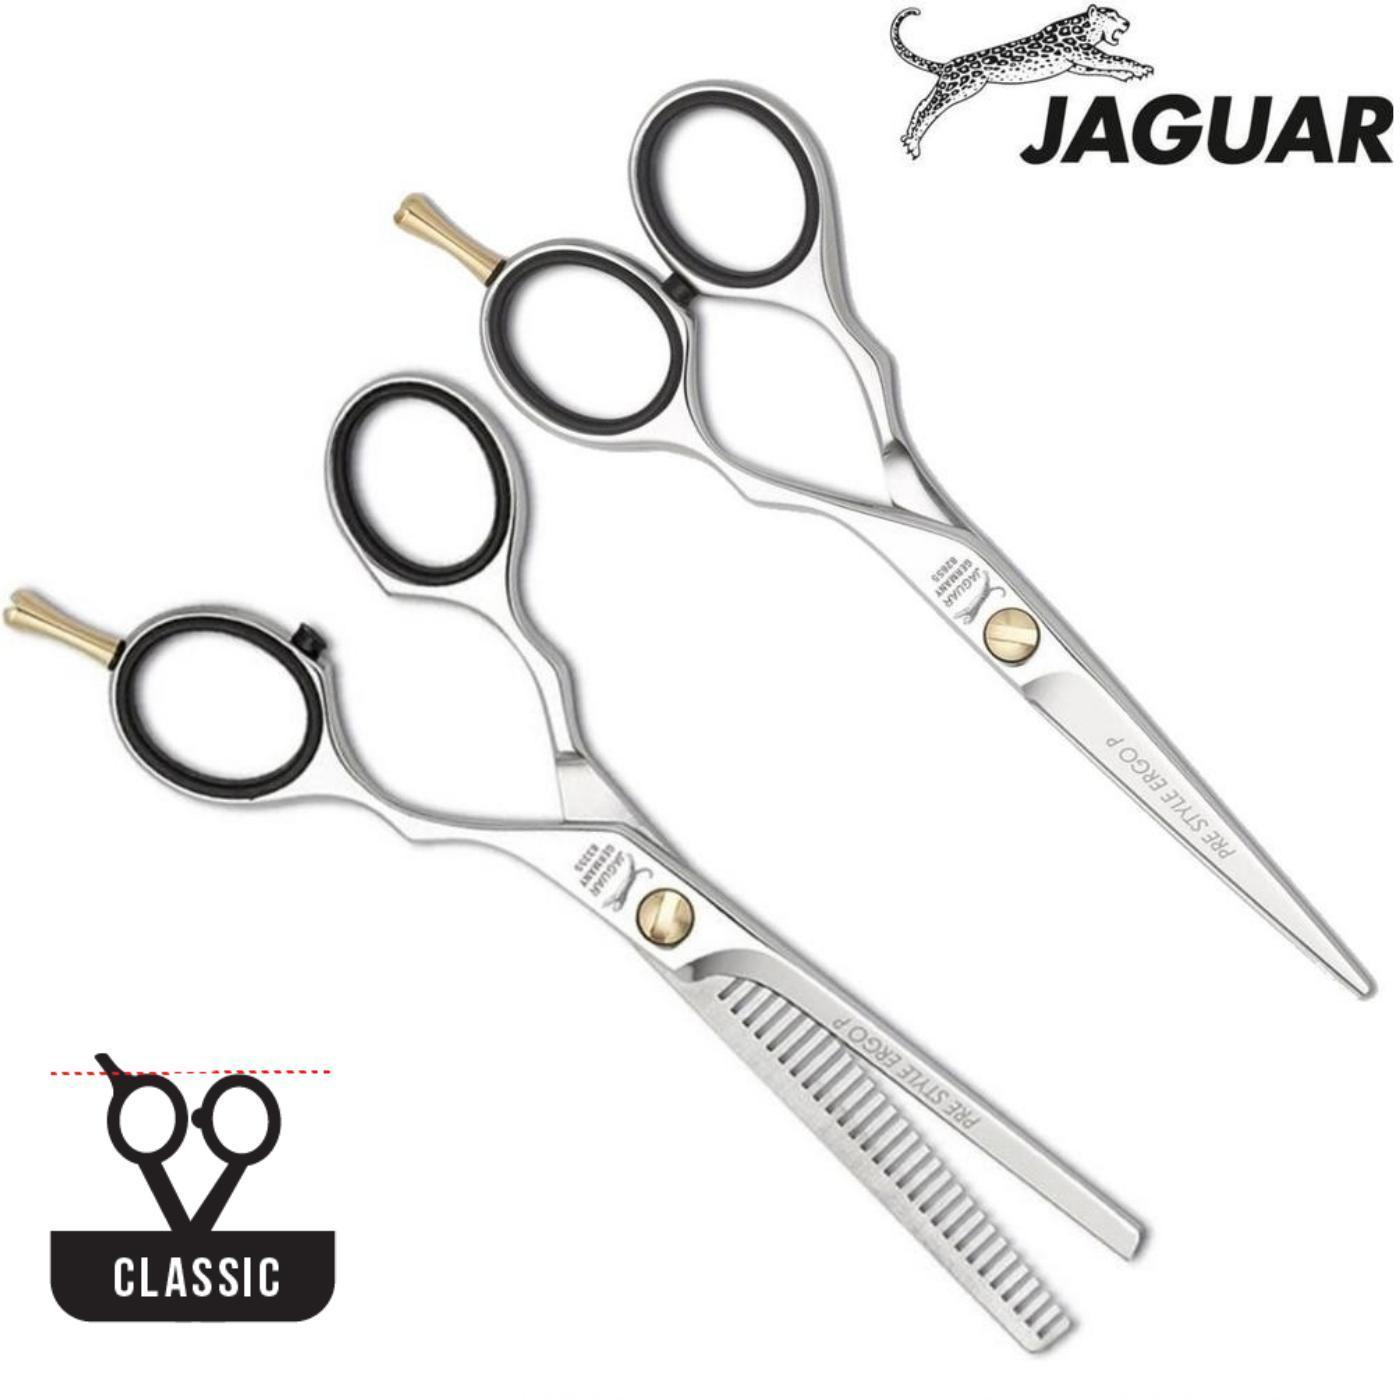 Jaguar Pre Style Ergo Hair Cutting & Thinning Set - Japan Scissors